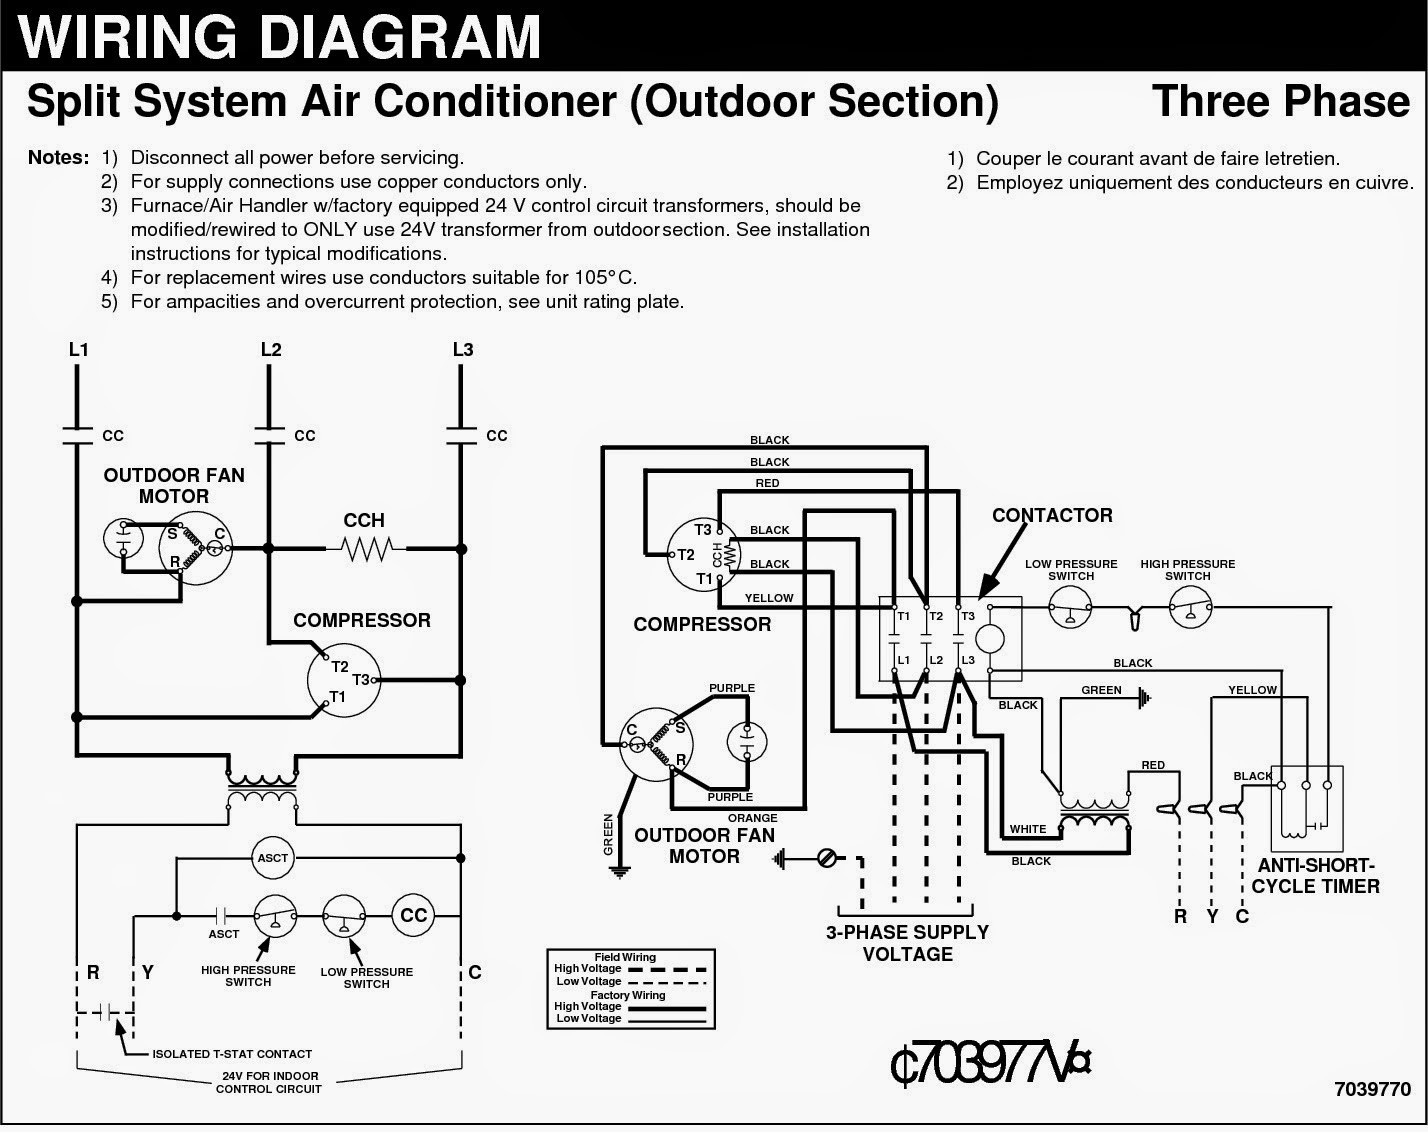 ac wiring codes 15 5 combatarms game de u2022outdoor wiring codes schematic wiring diagram rh [ 1428 x 1132 Pixel ]